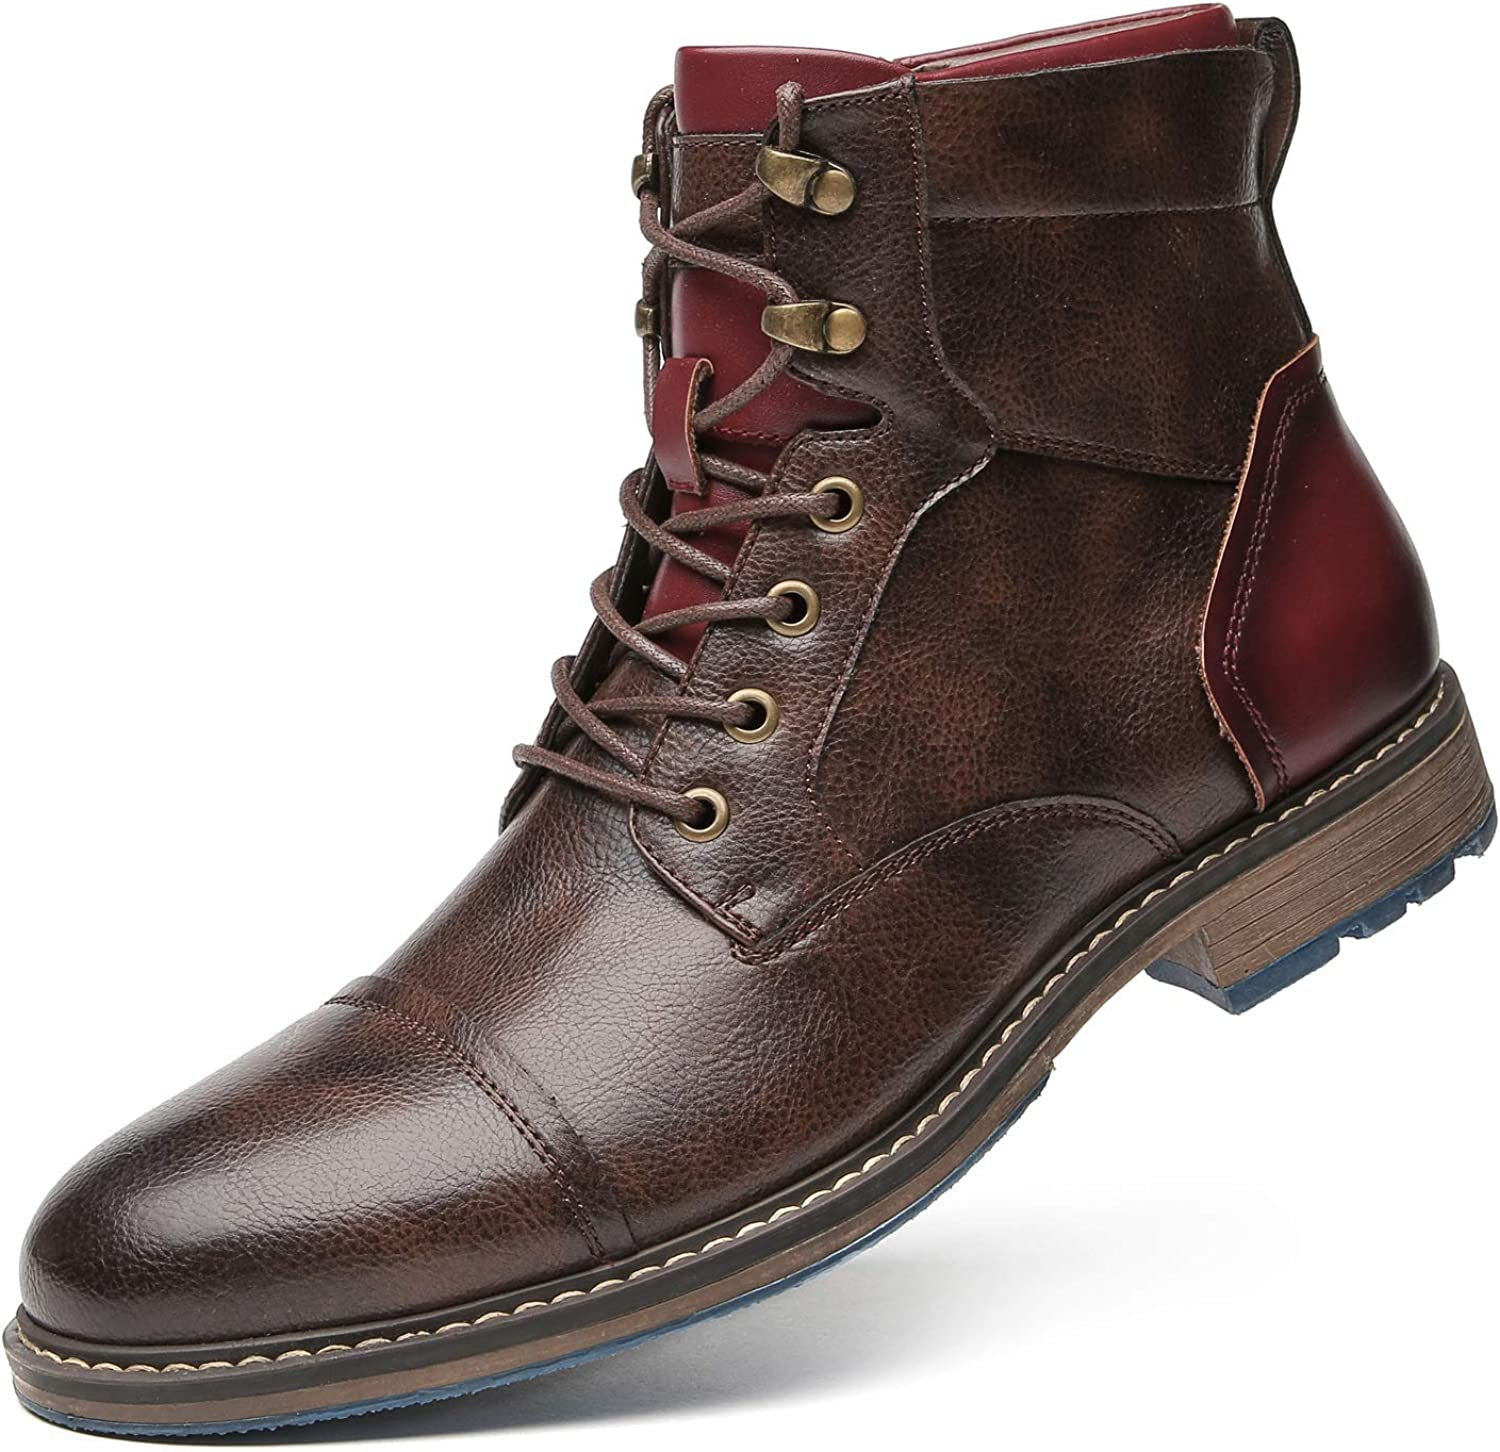 Motorcycle Combat Work Boots for Man - Casual Oxford Boots mens